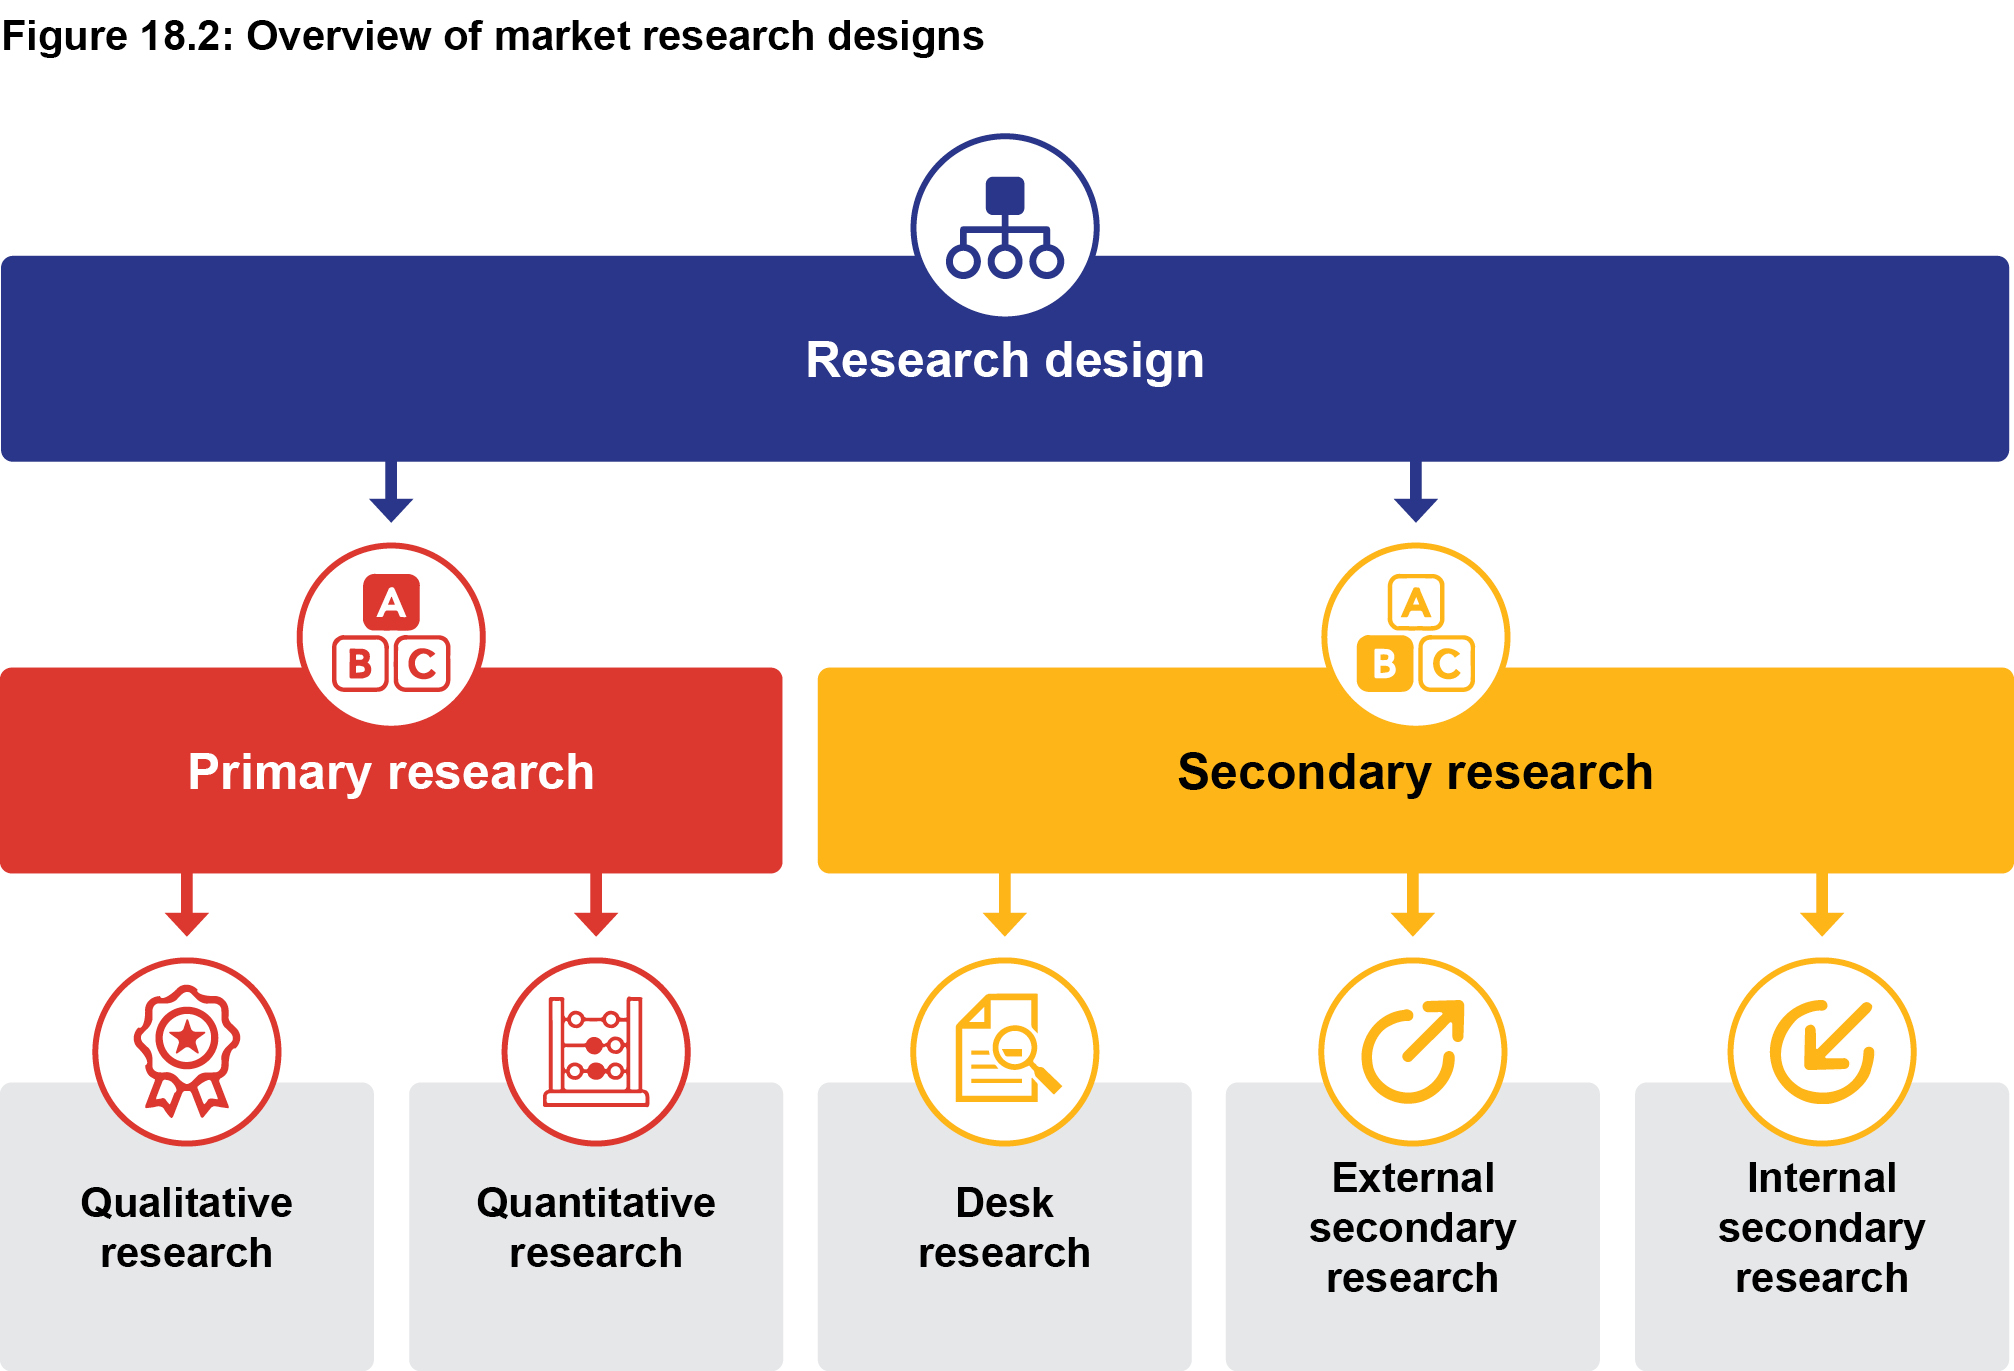 Figure 18.2: Overview of market research designs